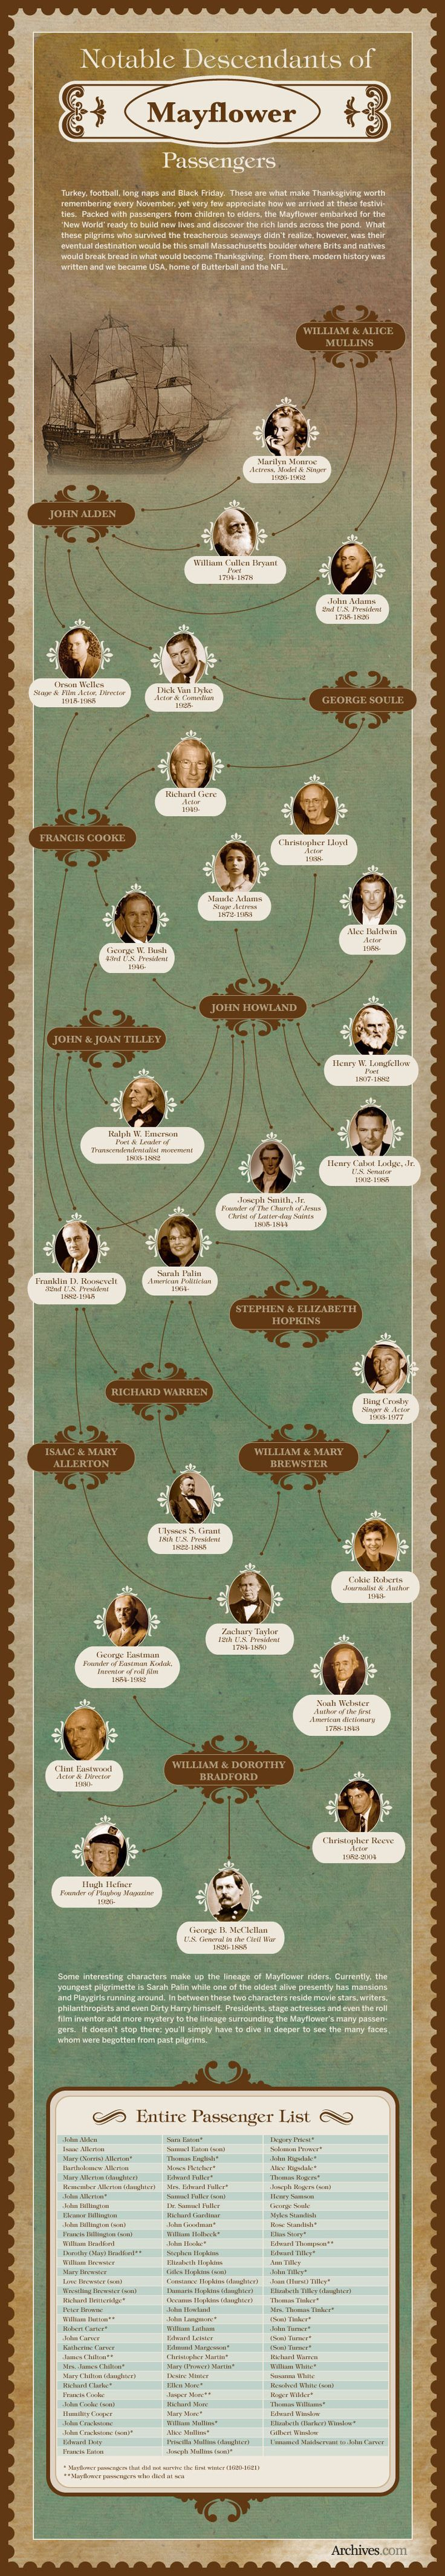 It's been almost 400 years sincethe good ship Mayflower landed in 1620 with the progenitors of a new nation.Estimates on how many little pilgrims they've left behindtoday range from 20+ to 35+ million. Hereis a sampling ofMayflower offspring who made good (anda few who might have strayed a bit from their Puritan roots). Looking for… Read more